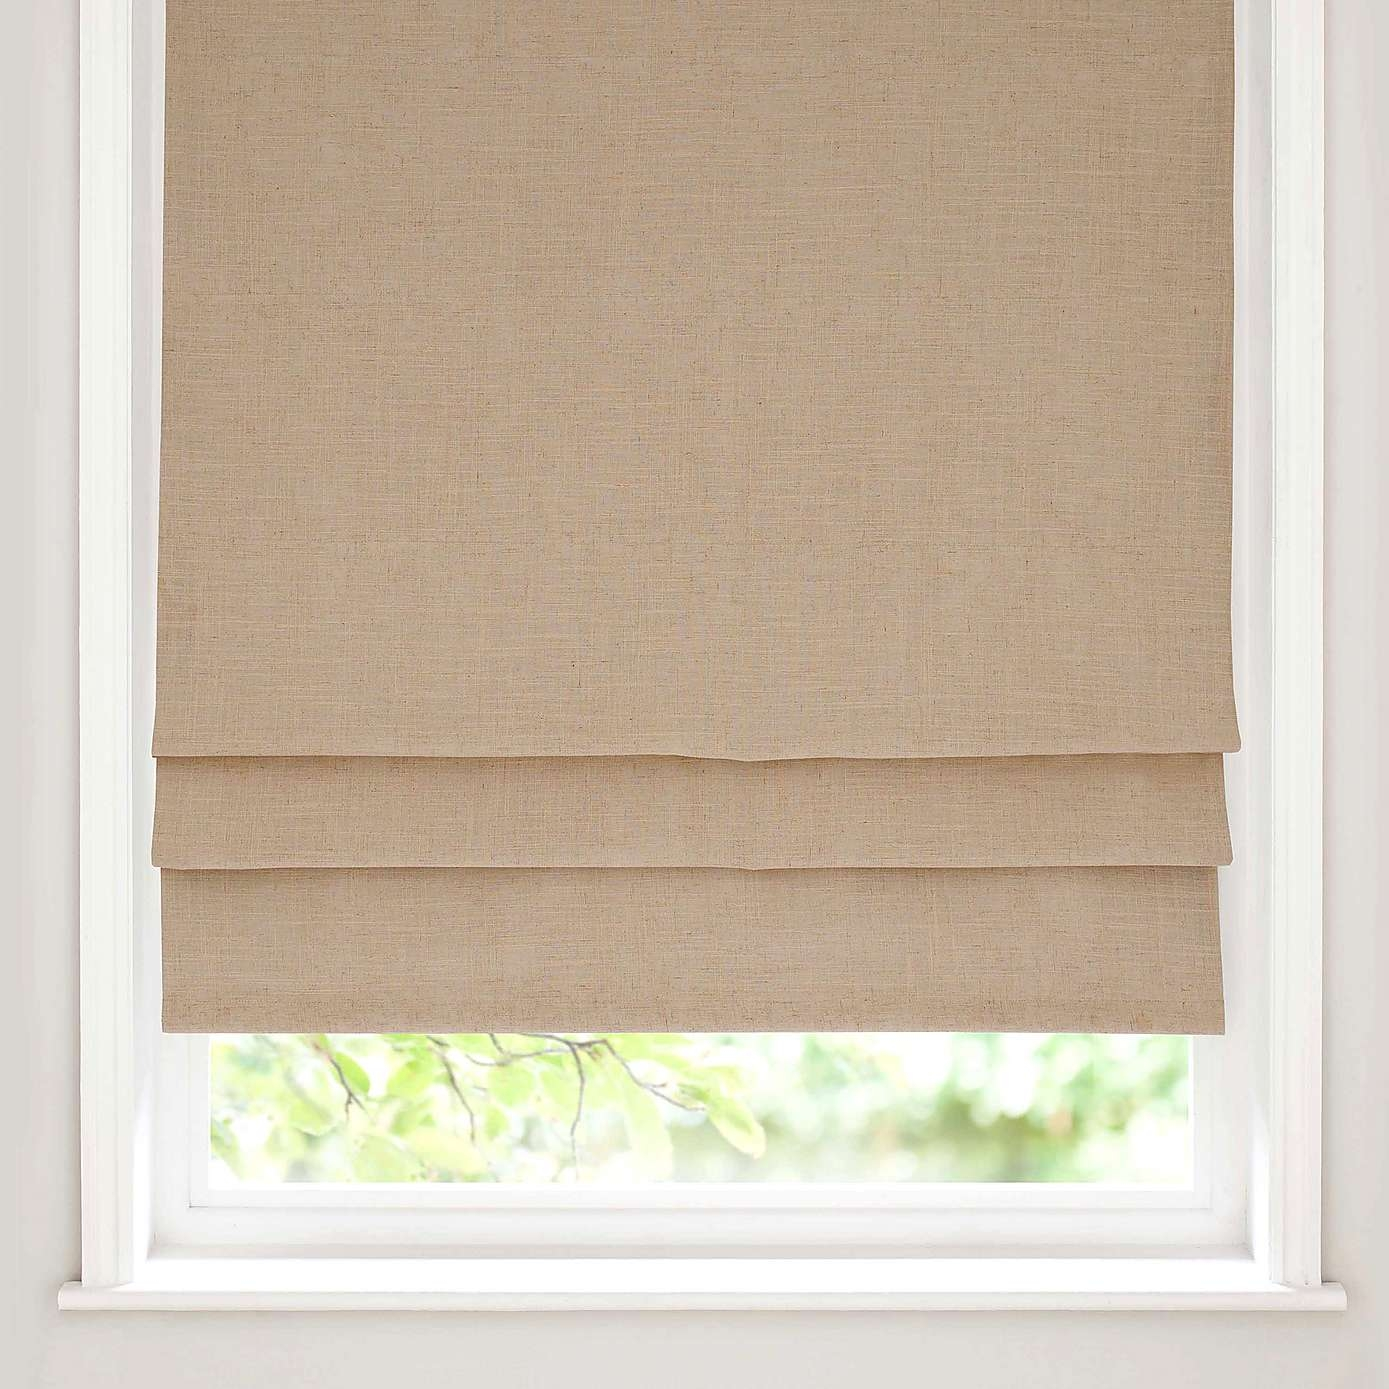 Beige Linen Blackout Roman Blind Dunelm Best Blackout Curtains Within Blackout Roman Blind (View 12 of 15)